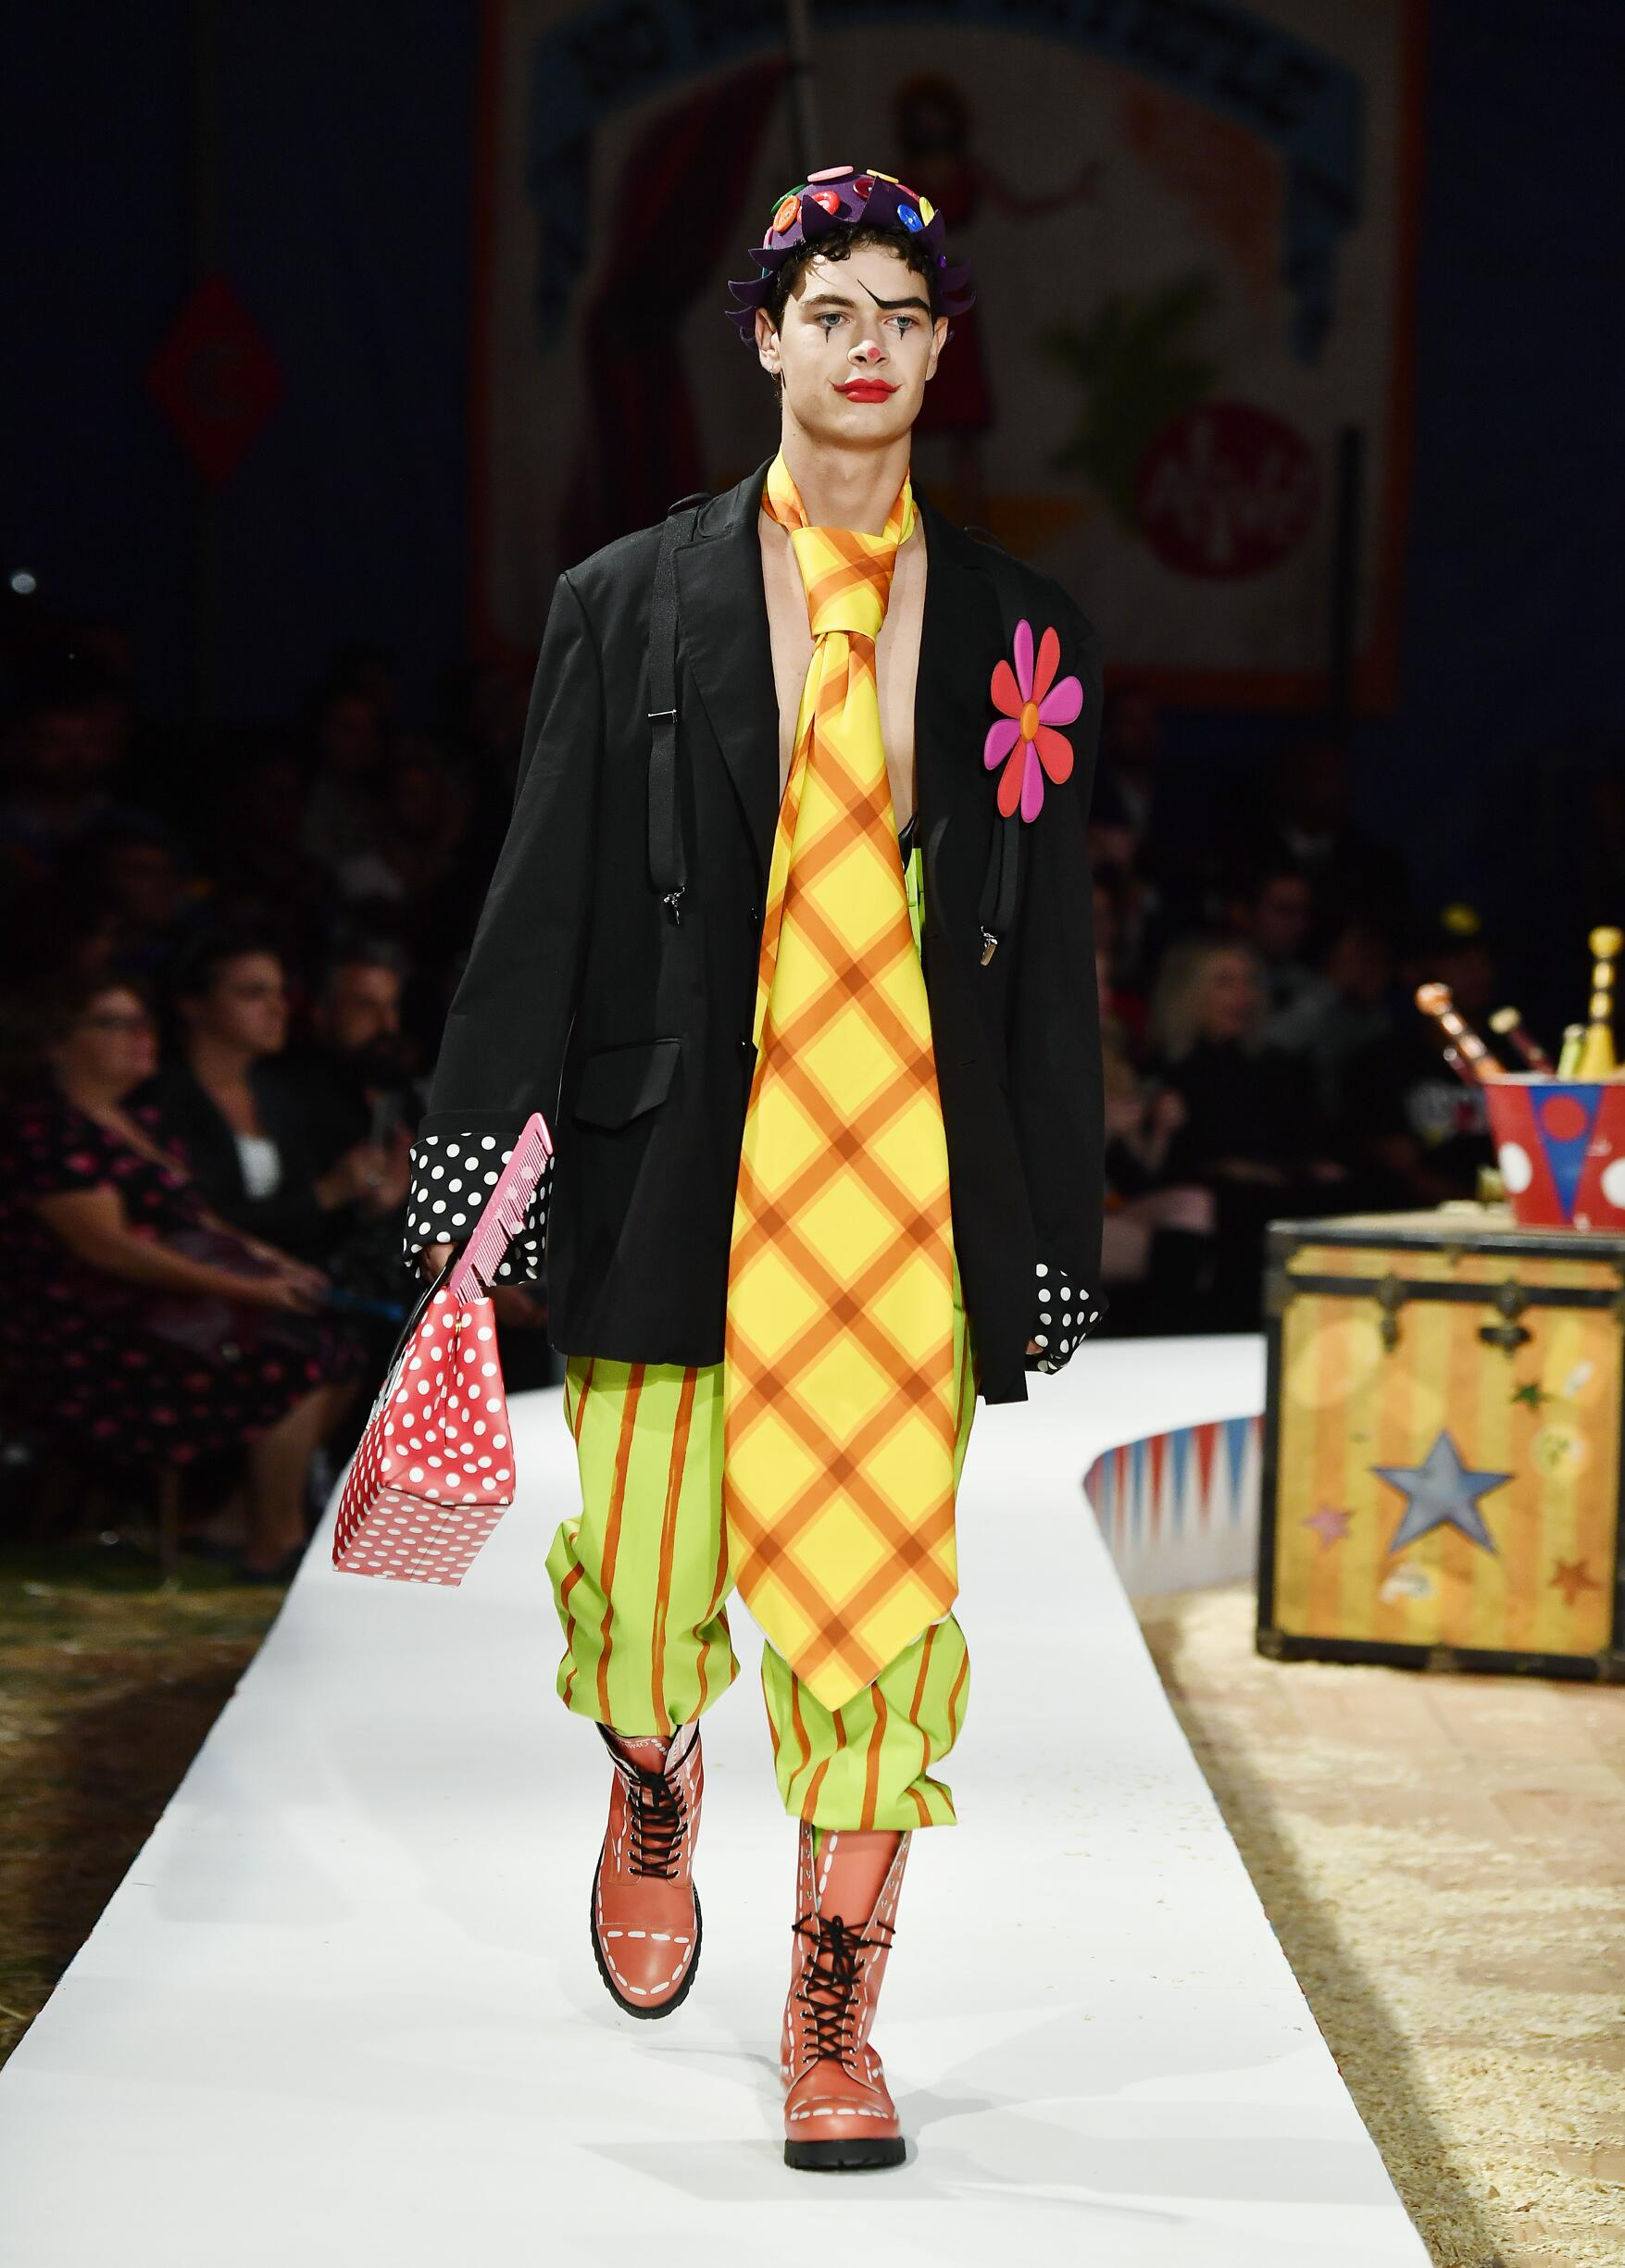 Moschino Spring Summer 2019 Menswear and Women's Resort Collection Look 67 Los Angeles